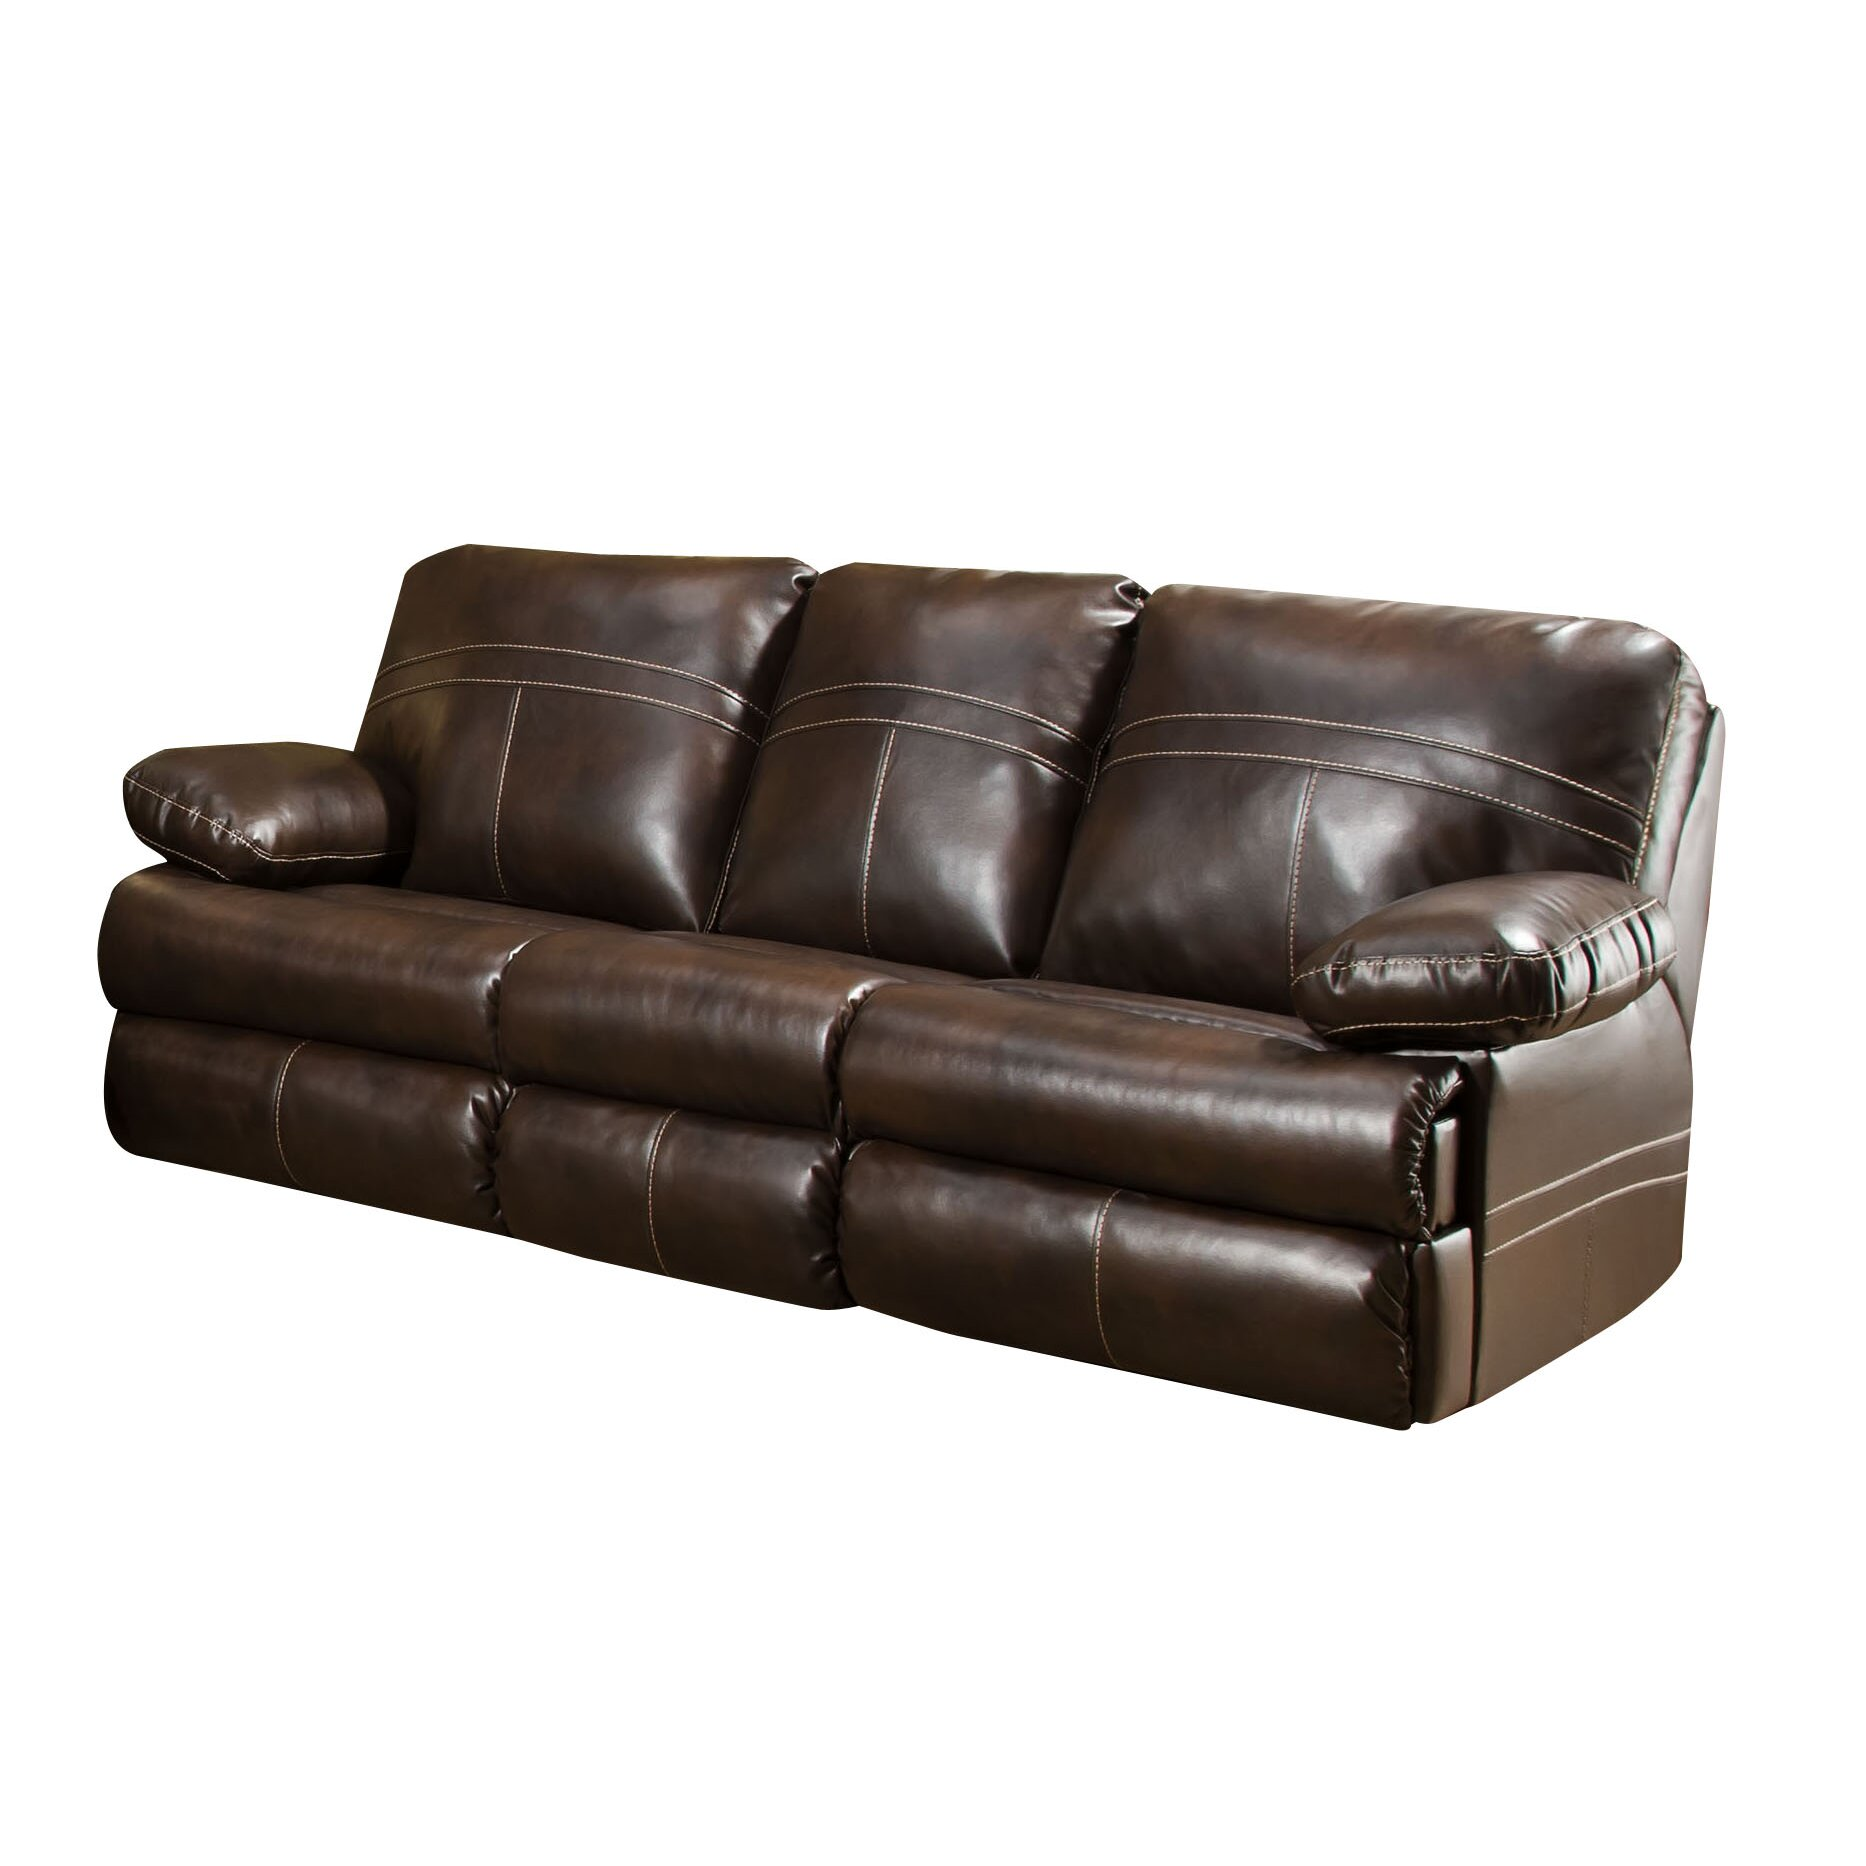 Simmons Upholstery Obryan Double Motion Reclining Sofa Reviews Birch Lane